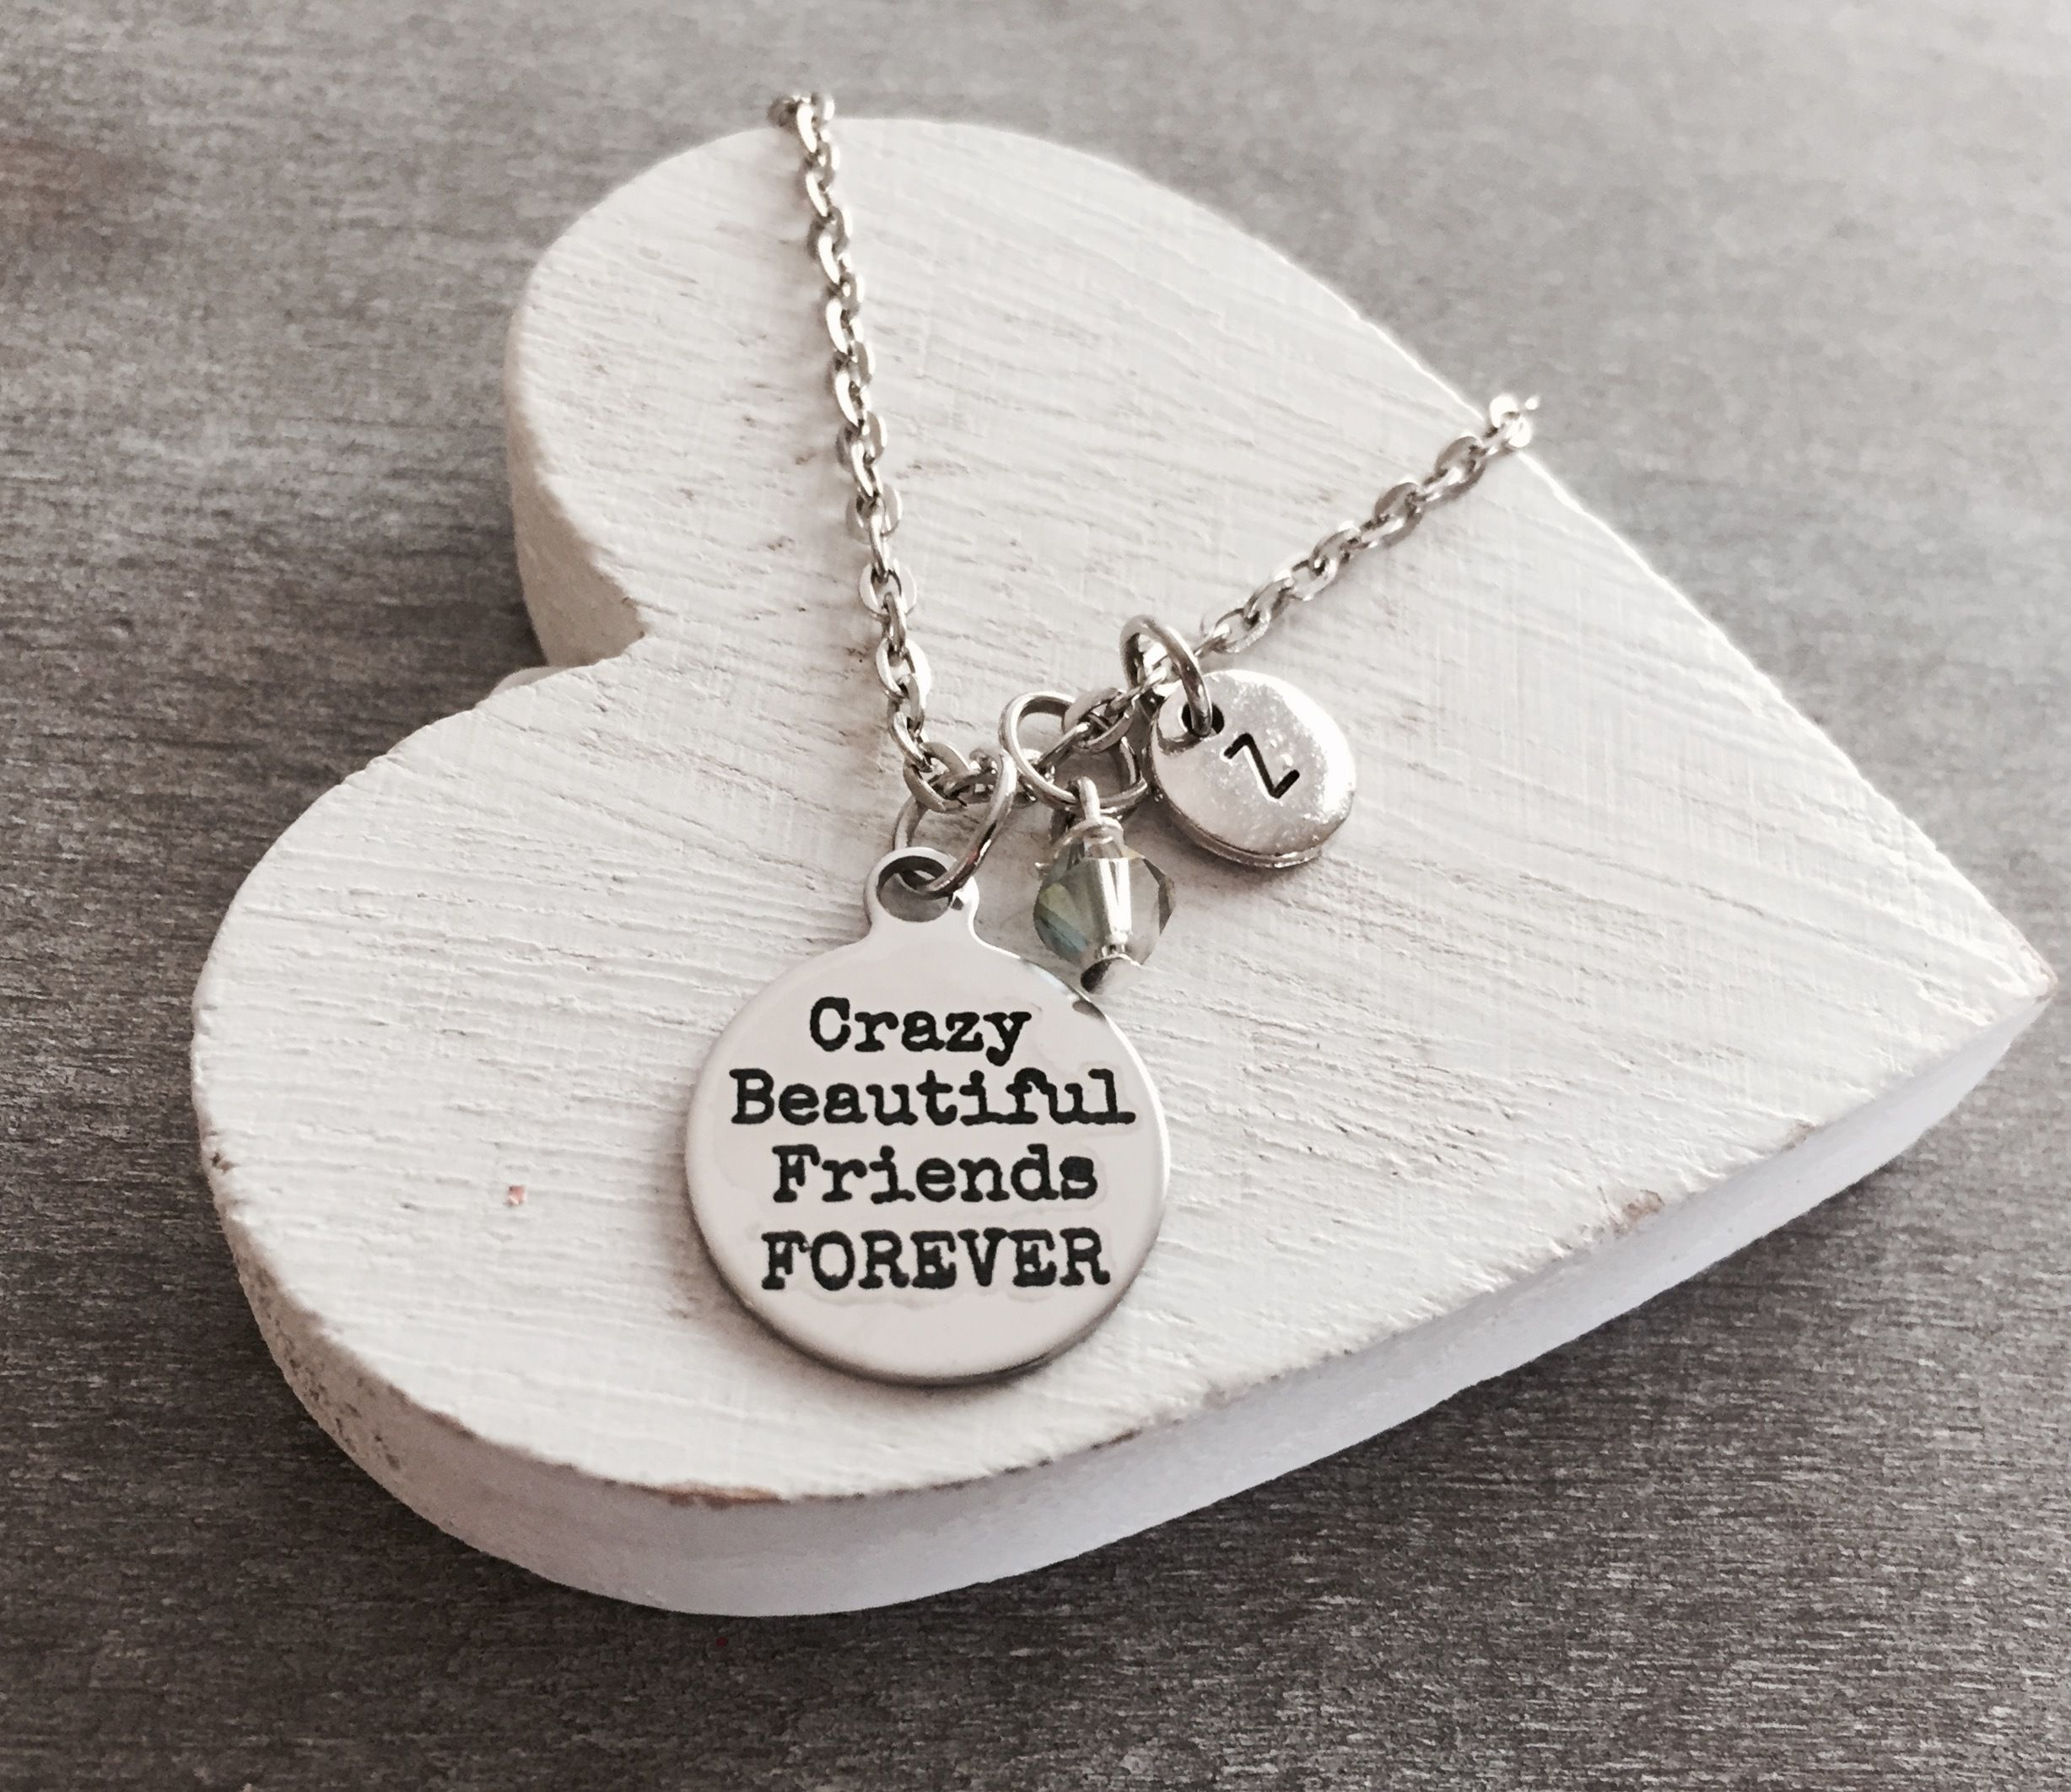 Crazy Beautiful Friends Forever Friendship Friend Best Gift Necklace Silver Charm By Sajolie